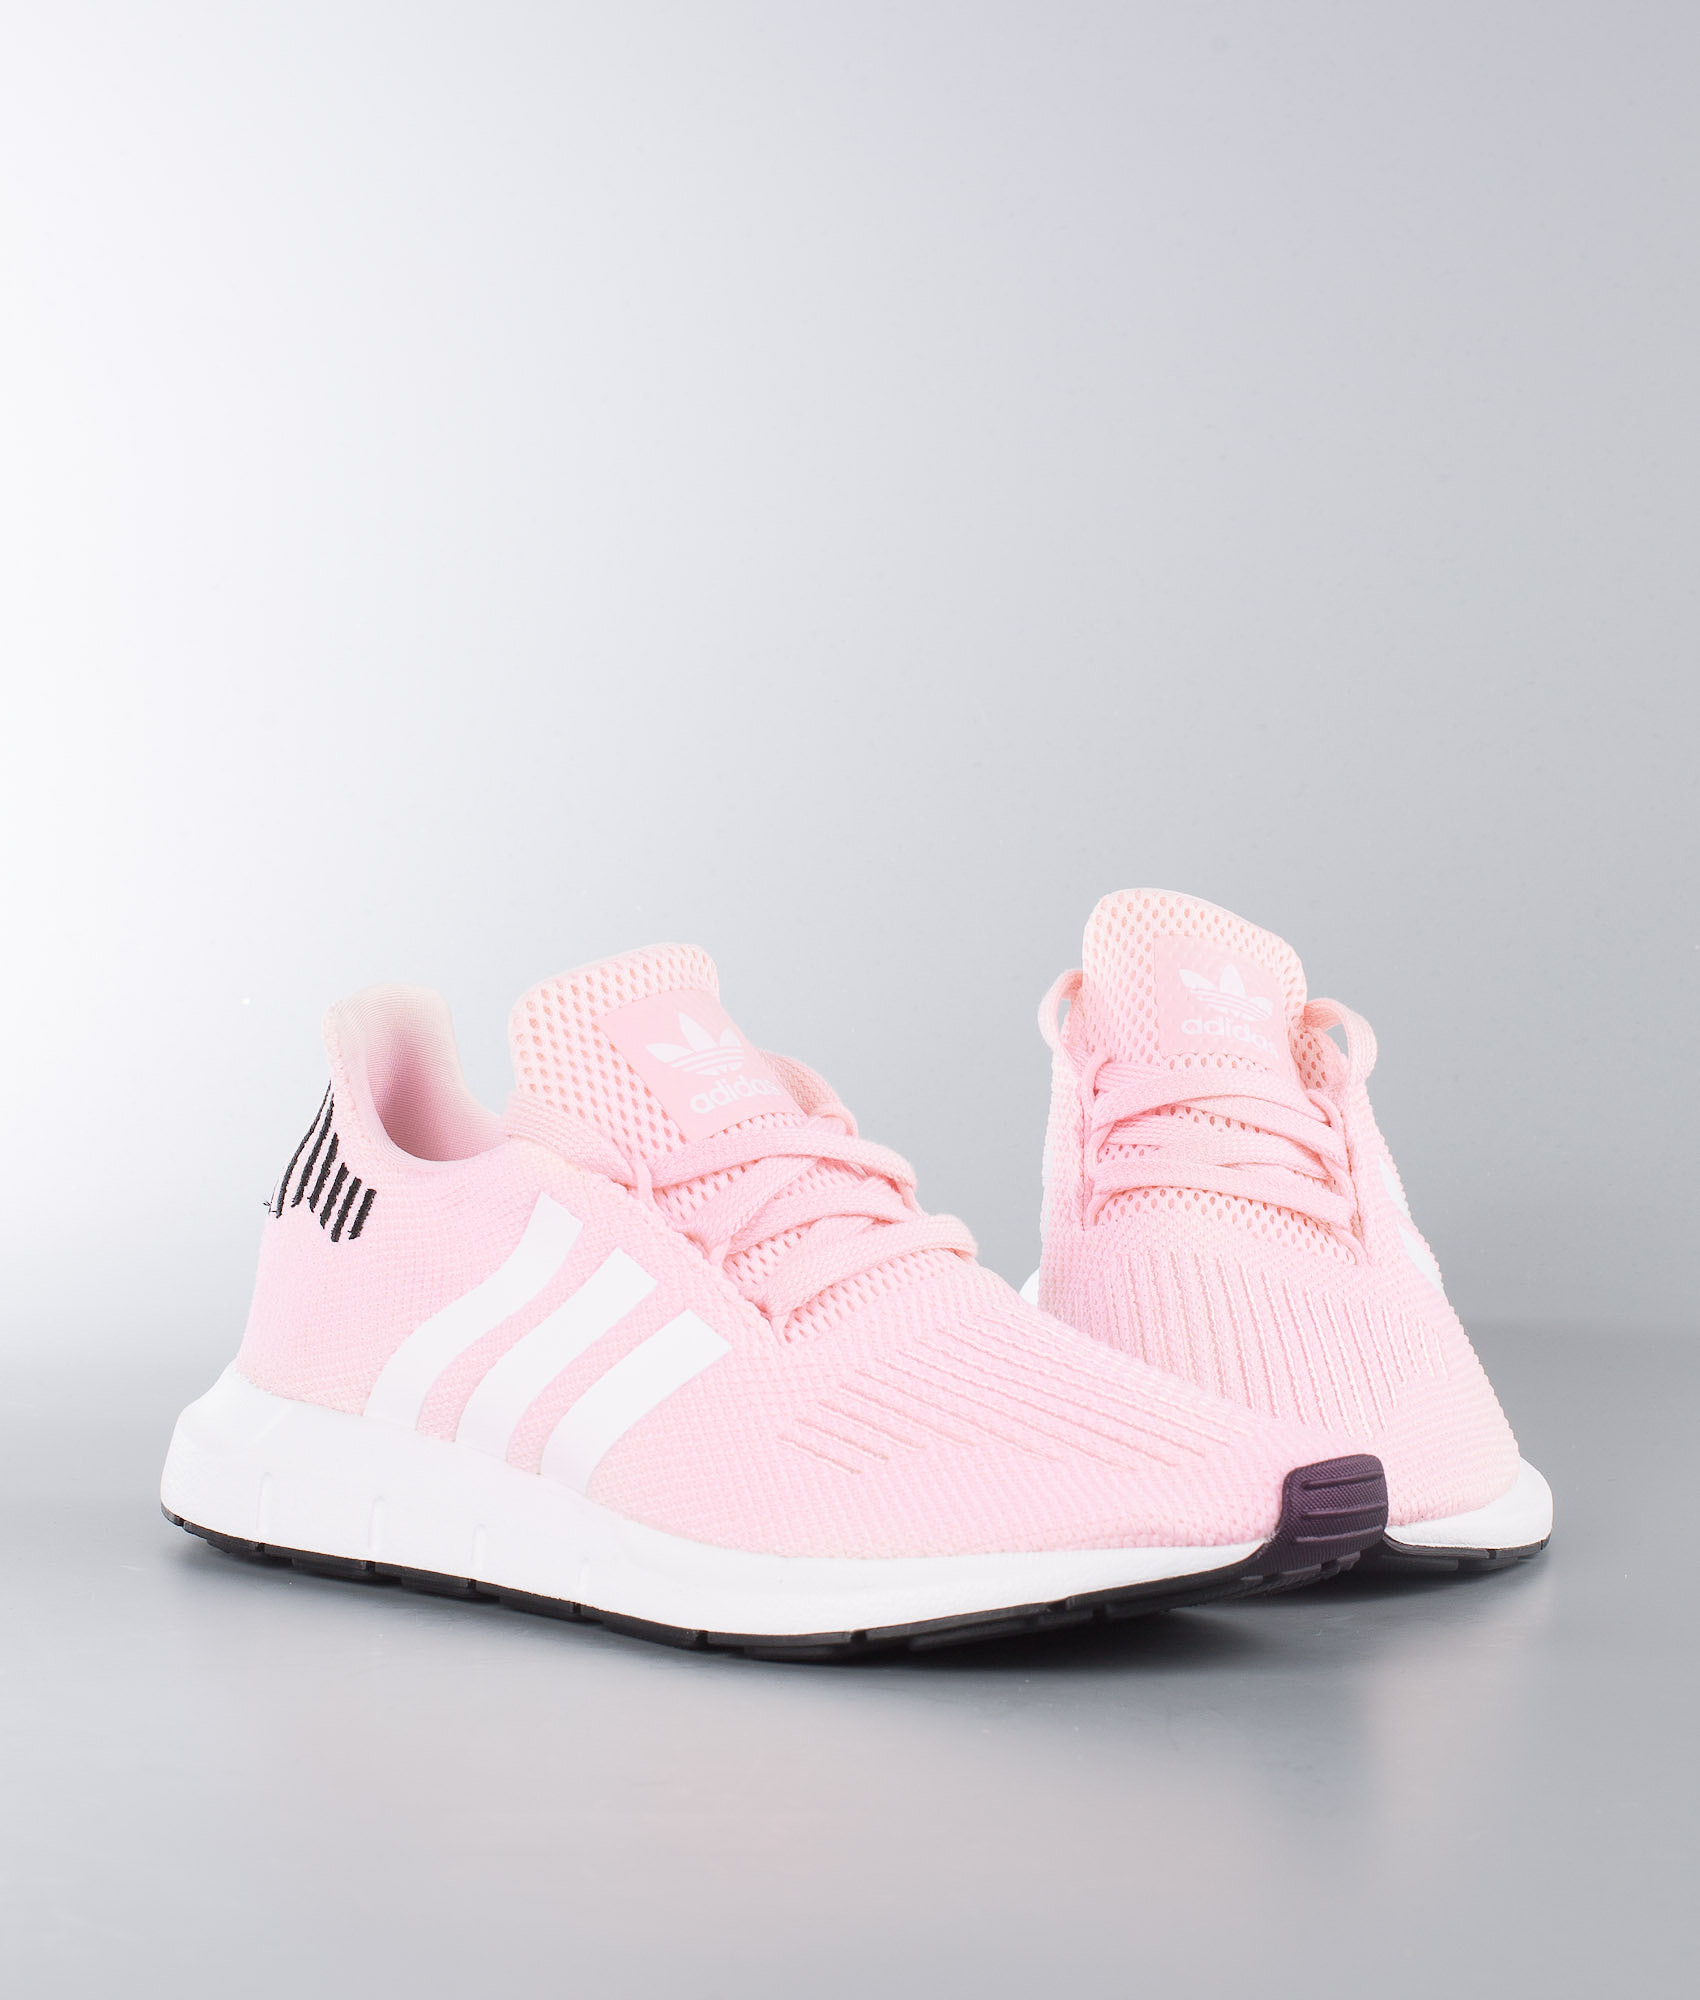 1dc072d5d Adidas Originals Swift Run W Shoes Ice Pink Ftwr White Core Black ...